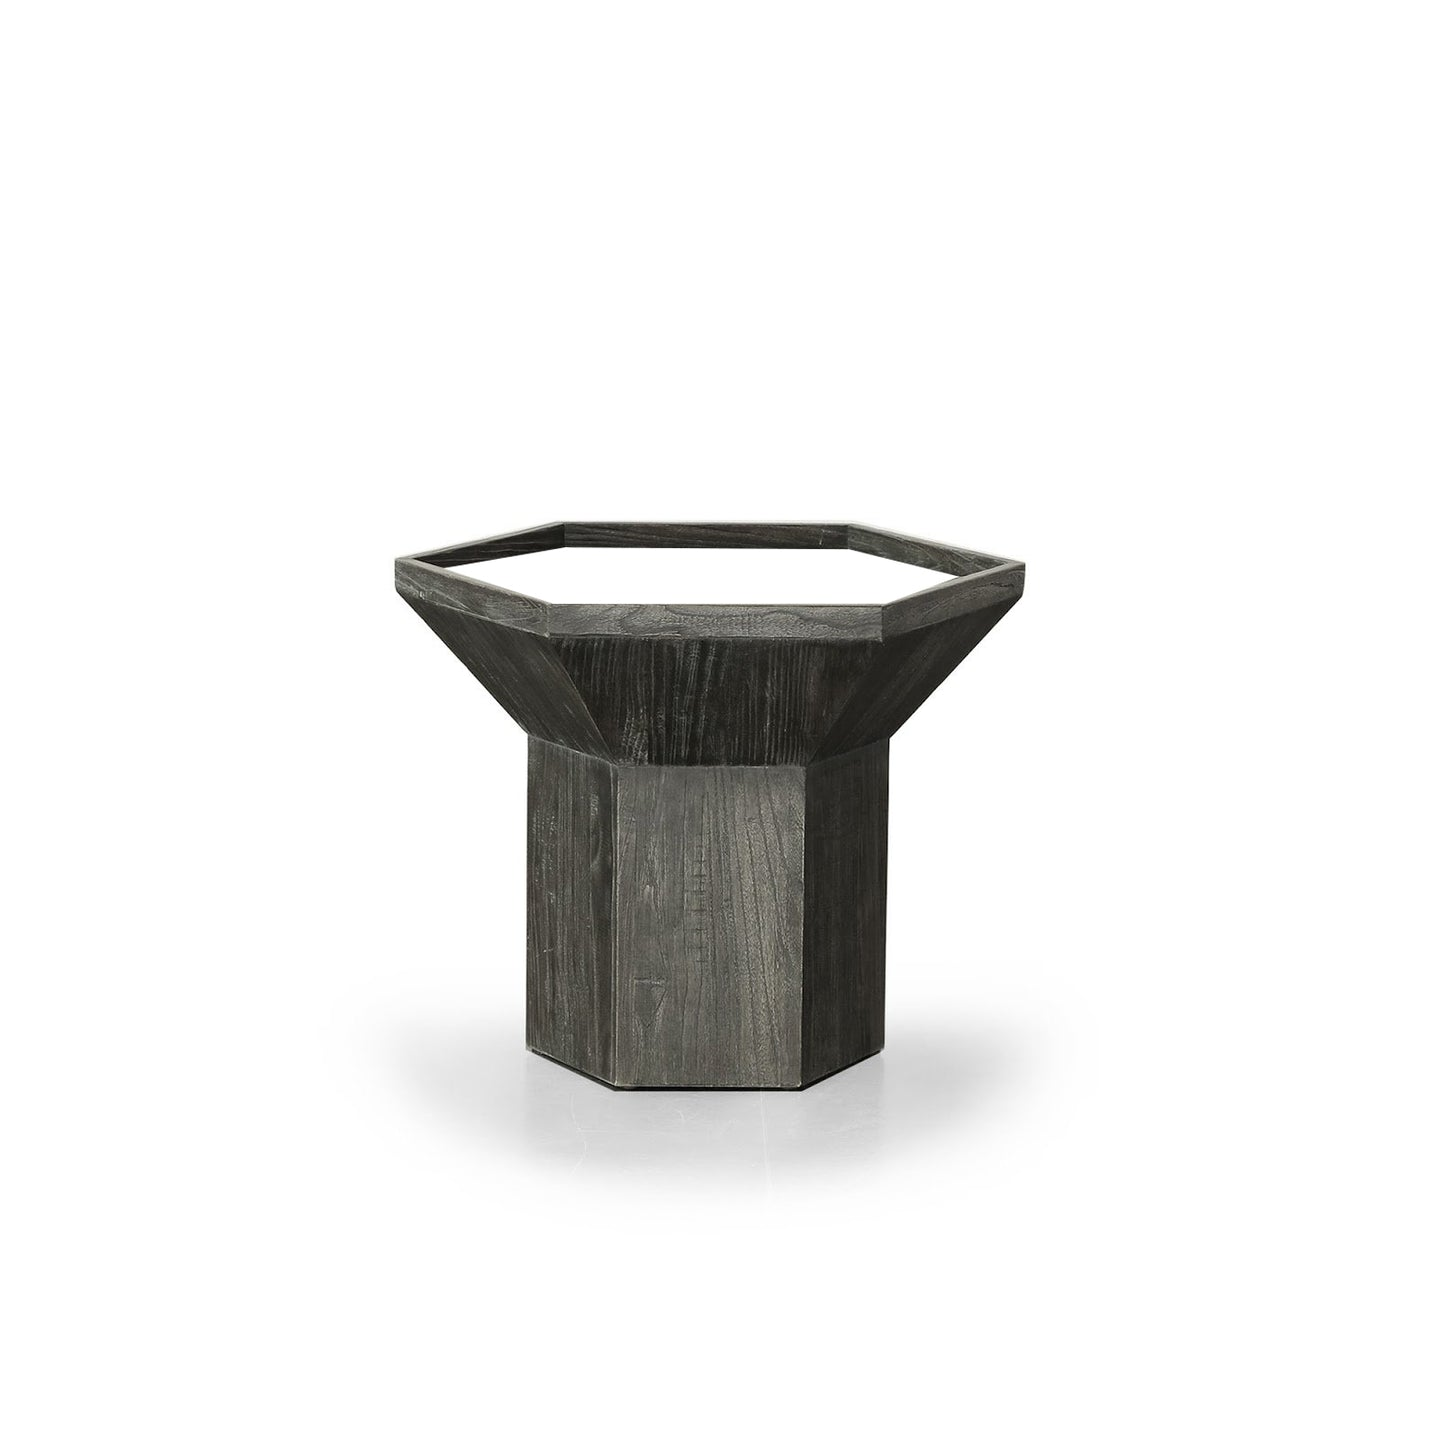 OYSTER END TABLE